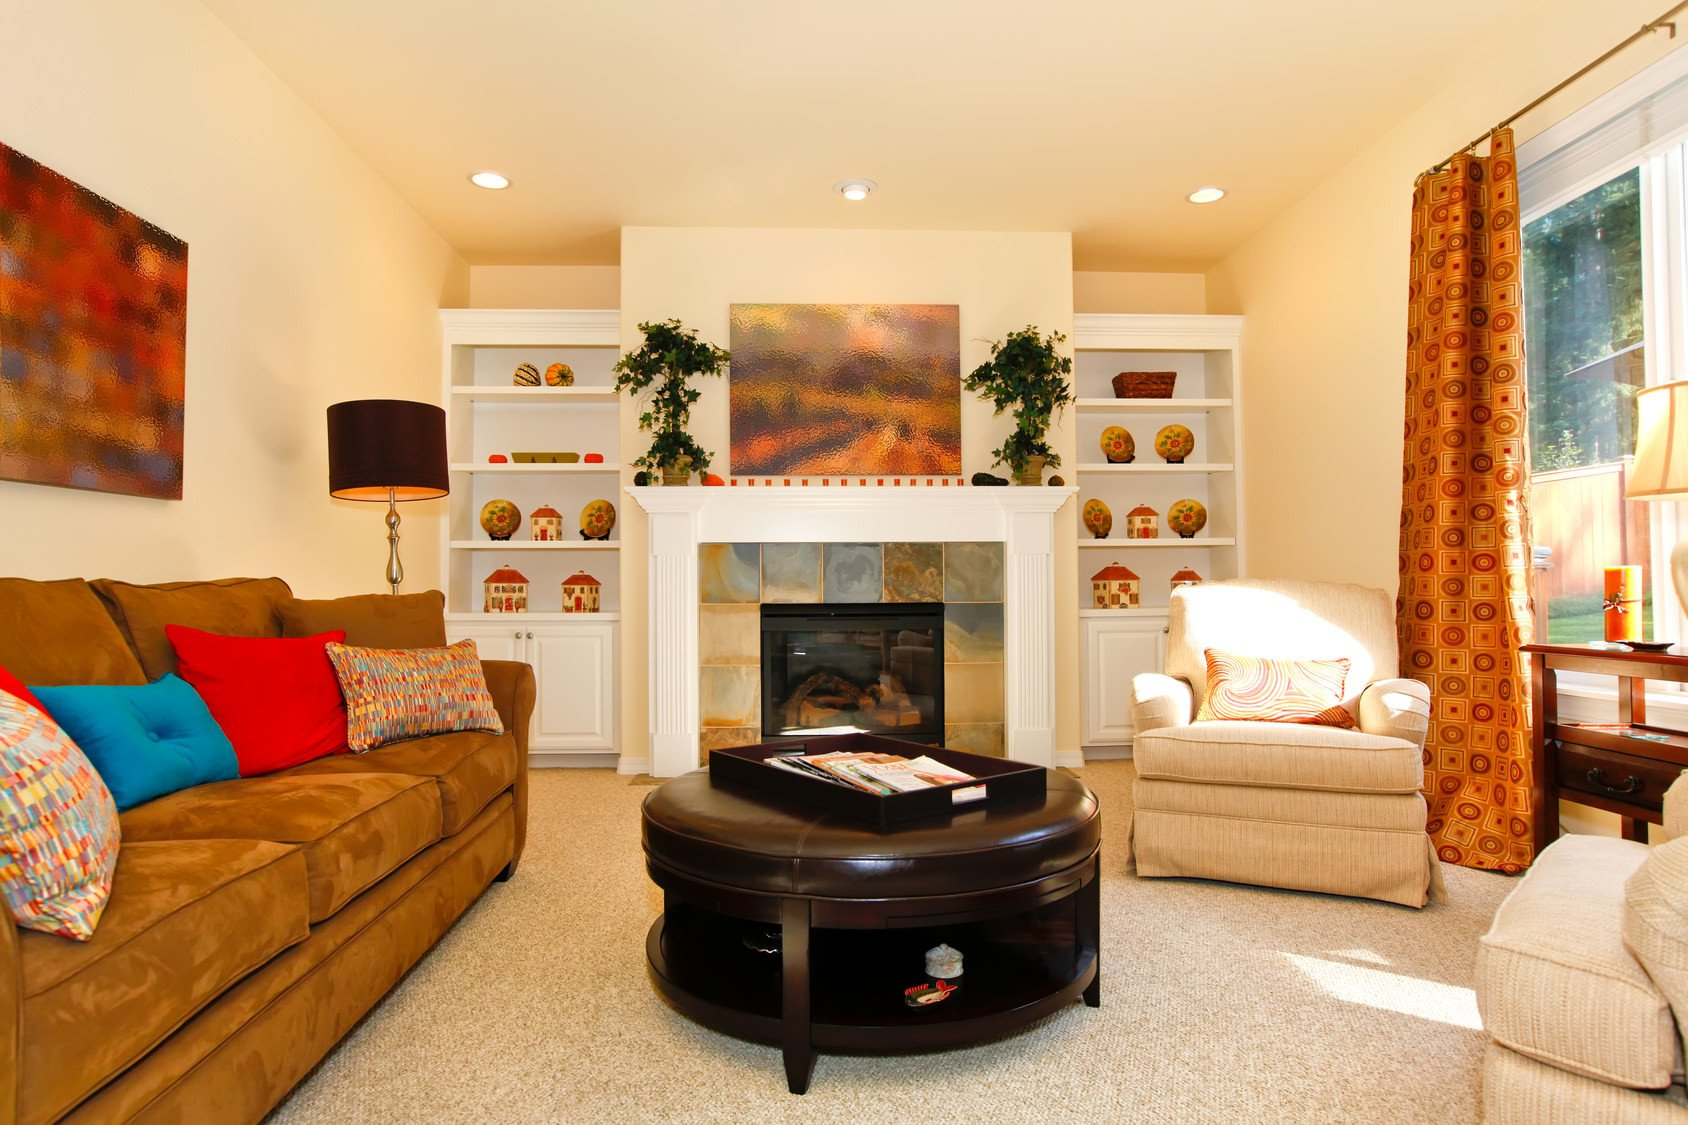 Comfortable Living Room Fireplace Elegant top 3 Upgrades for A More fortable Living Roomhearthside Fireplace & Patio